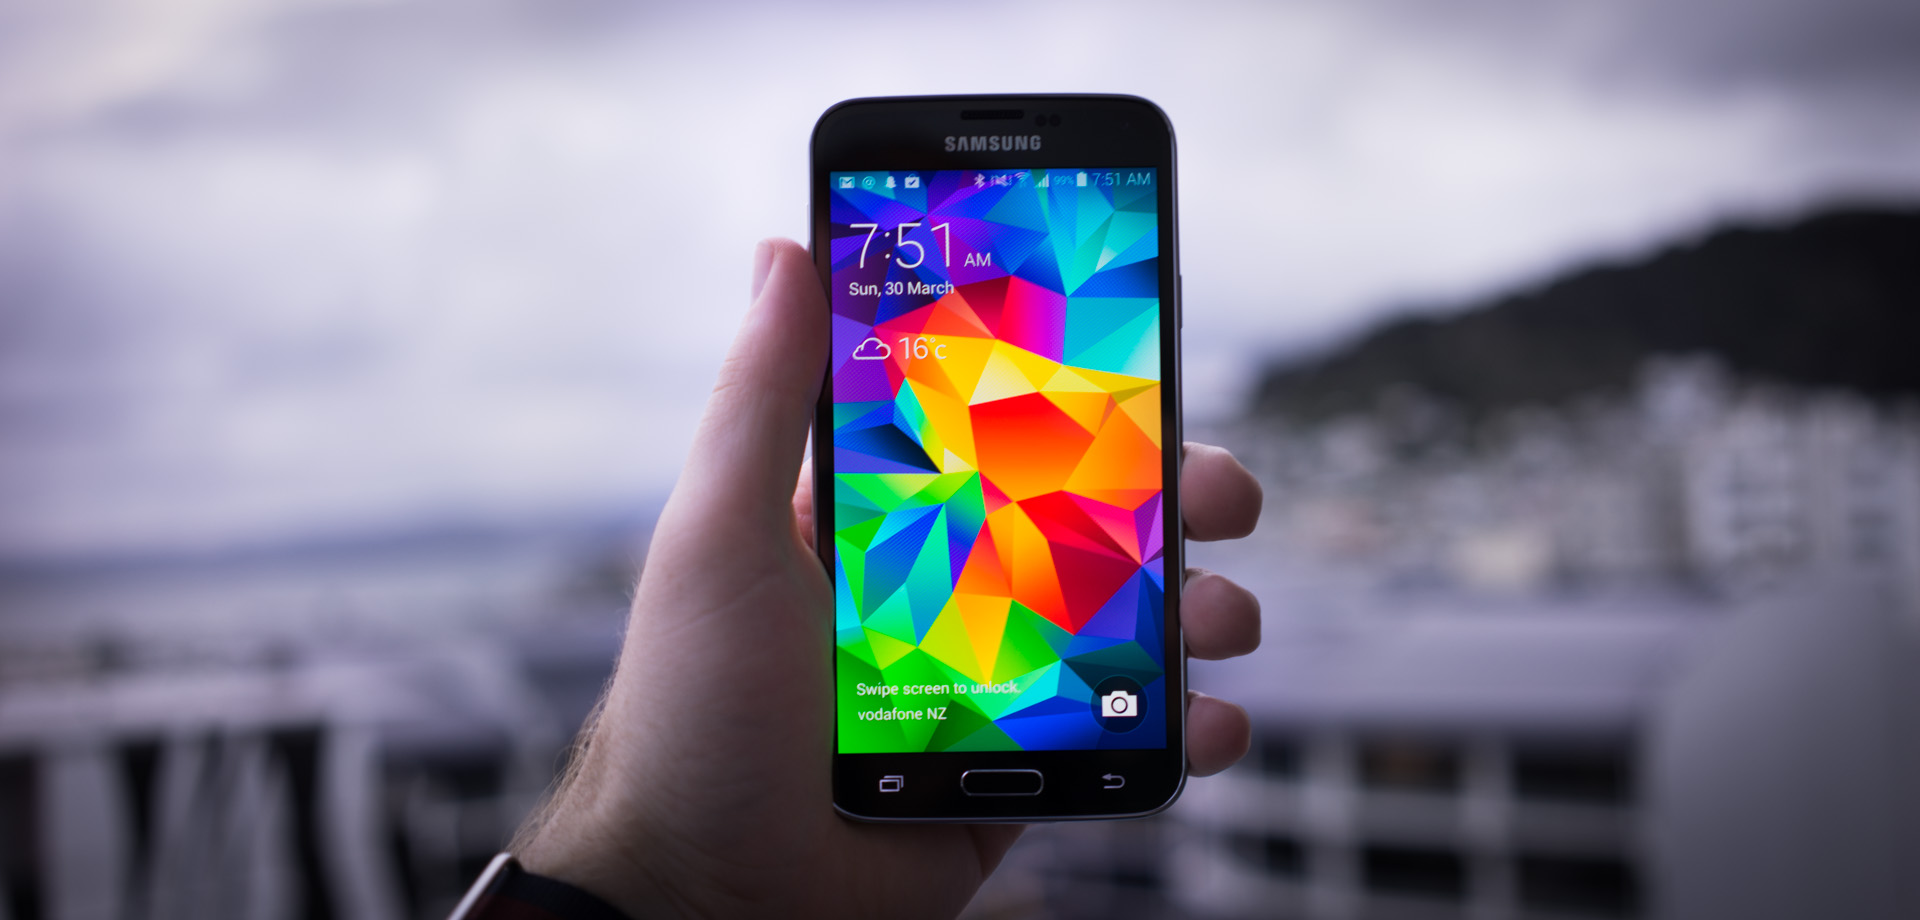 Samsung Galaxy S5 Goes on Sale Worldwide